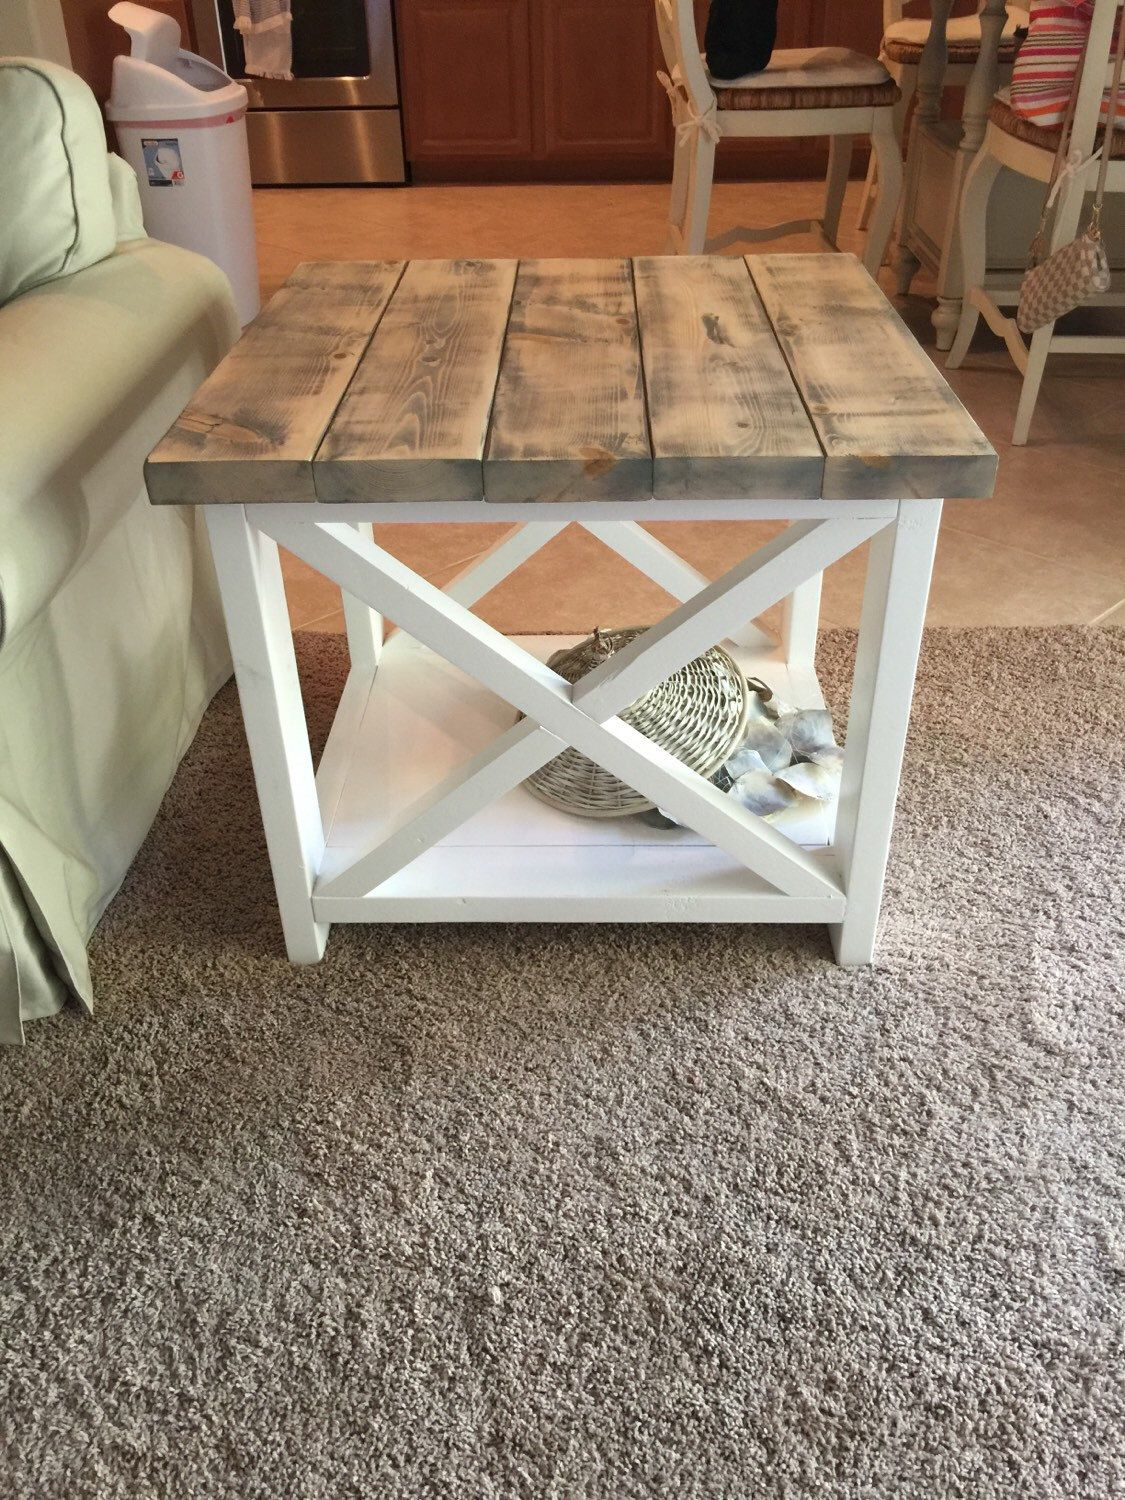 custom rustic farmhouse end table thewoodmarket etsy country white tables listing furniture for small spaces modern accent oblong tablecloth sizes bedroom lamp shades and large